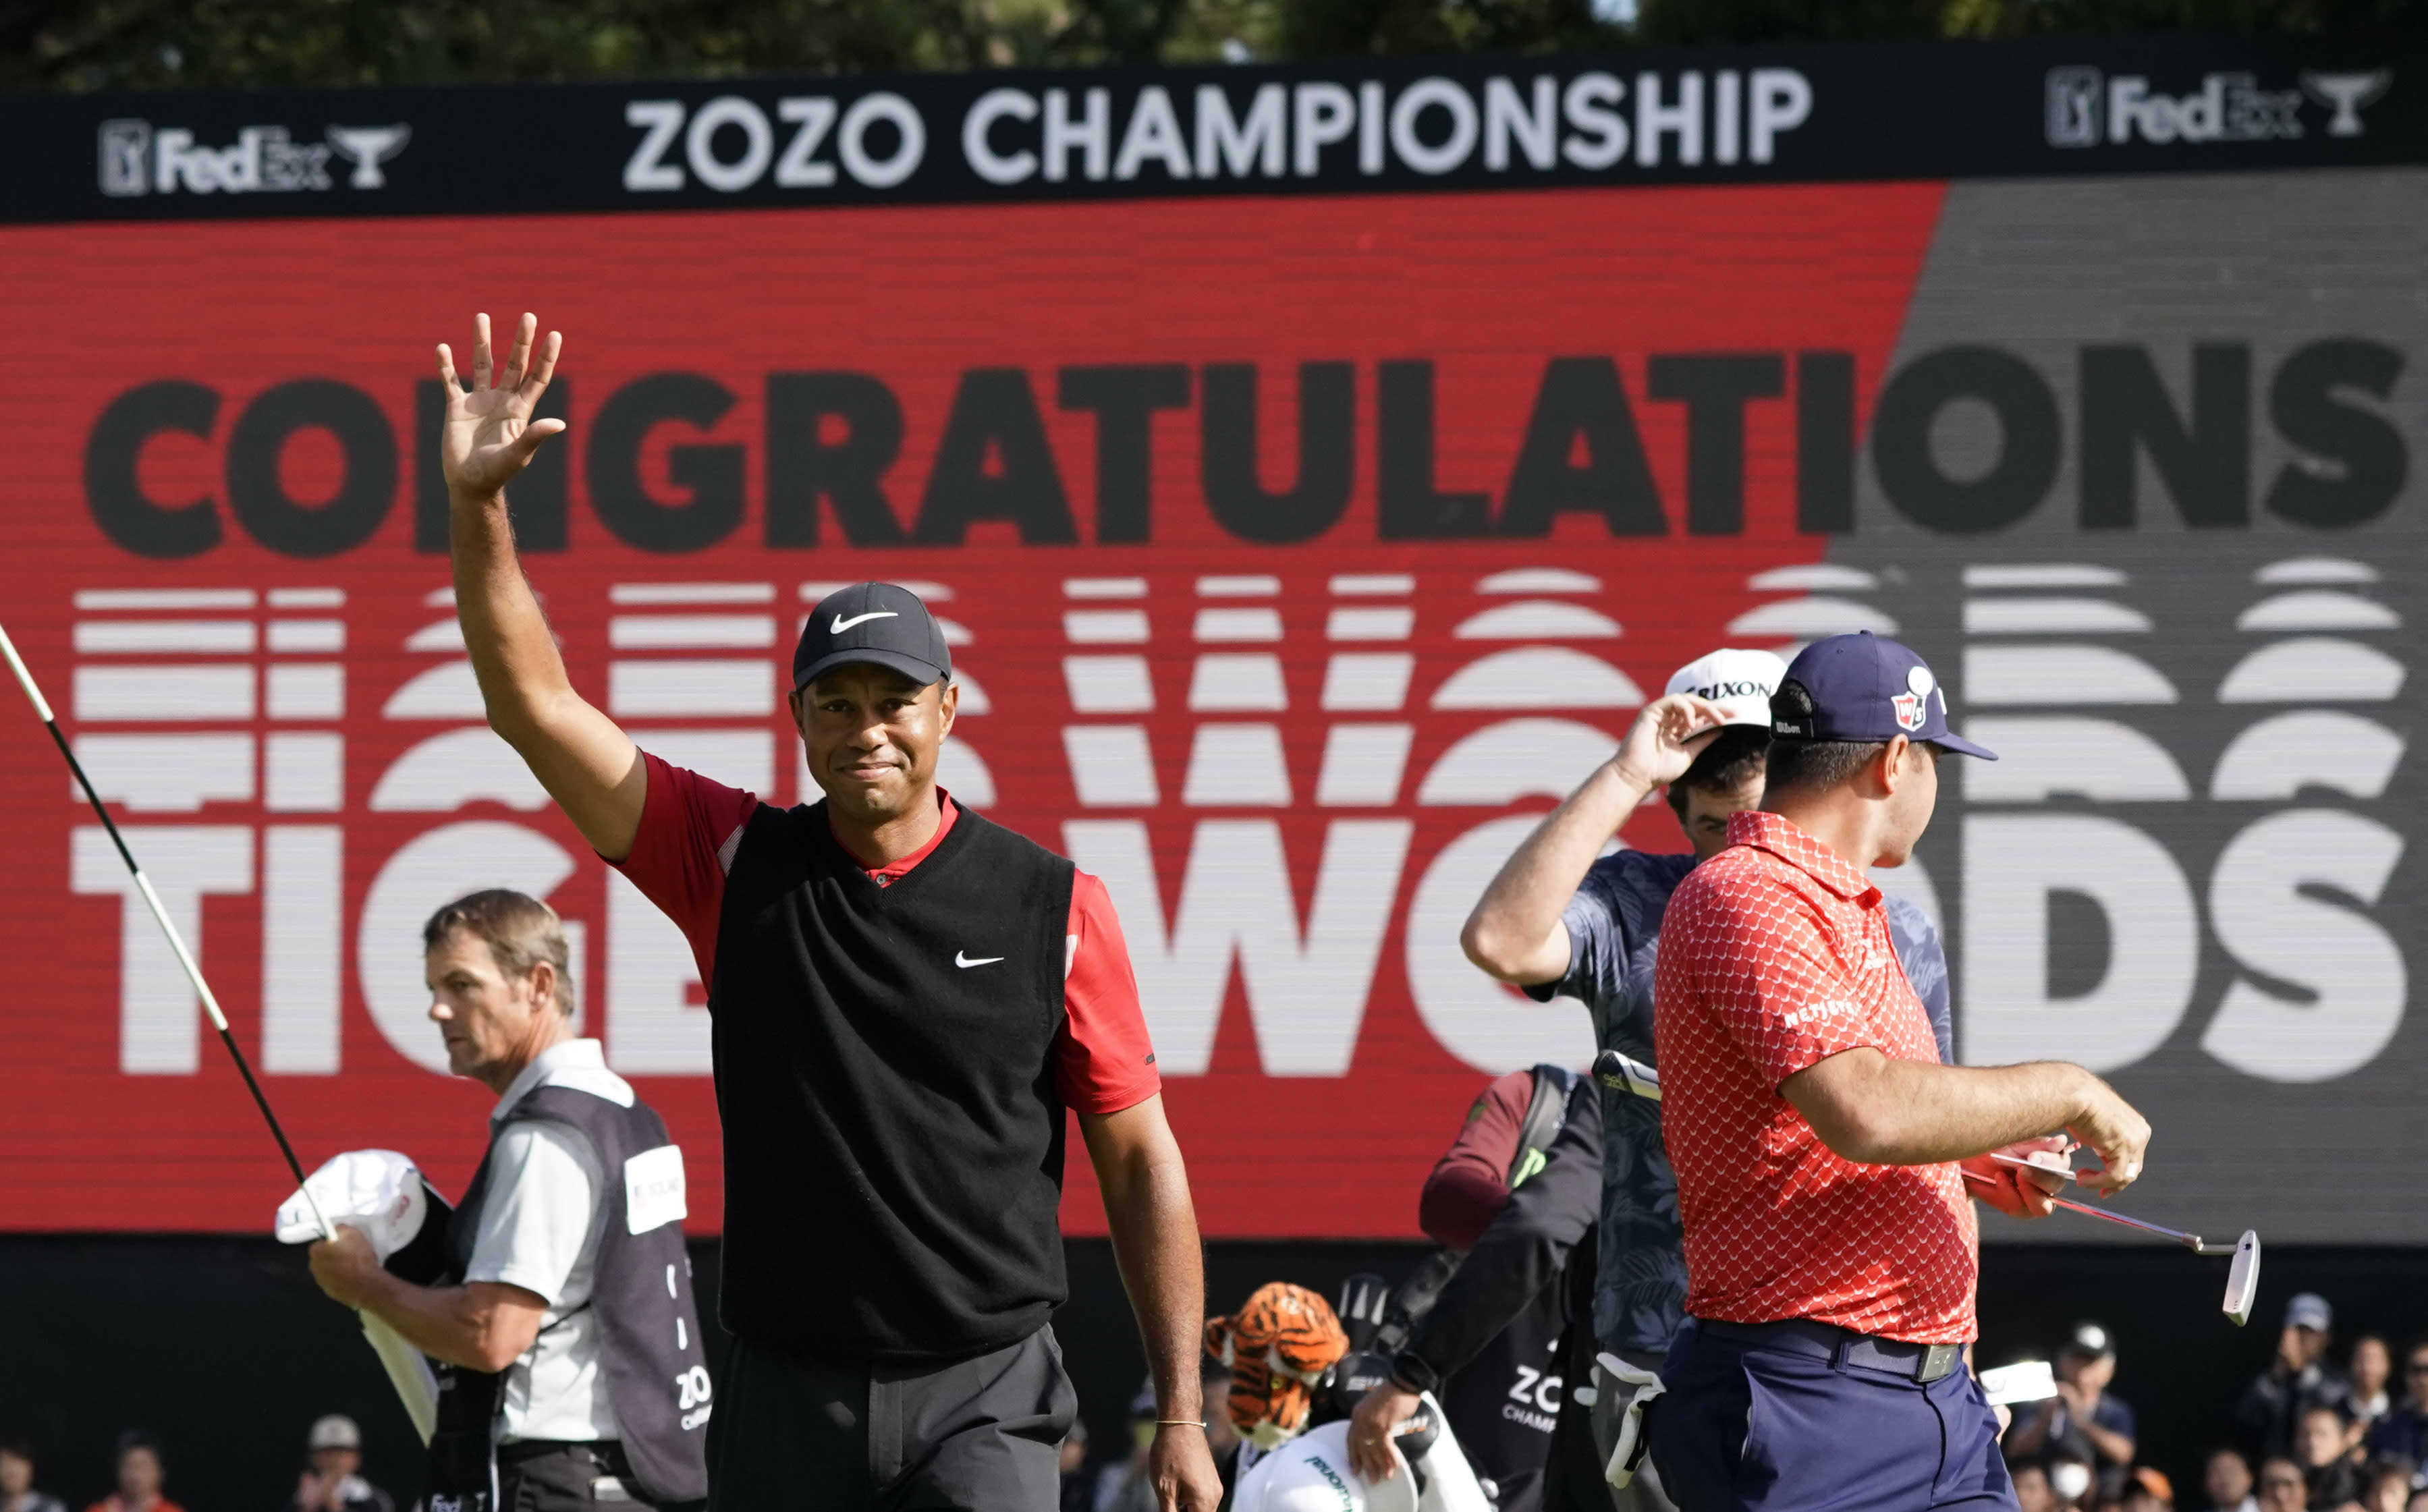 FILE - In this Monday, Oct. 28, 2019, file photo, Tiger Woods celebrates after winning the Zozo Championship PGA Tour at the Accordia Golf Narashino country club in Inzai, east of Tokyo, Japan. The tour is looking into the possibility of moving the event to the western U.S. this year because of the COVID-19 pandemic. (AP Photo/Lee Jin-man, File)